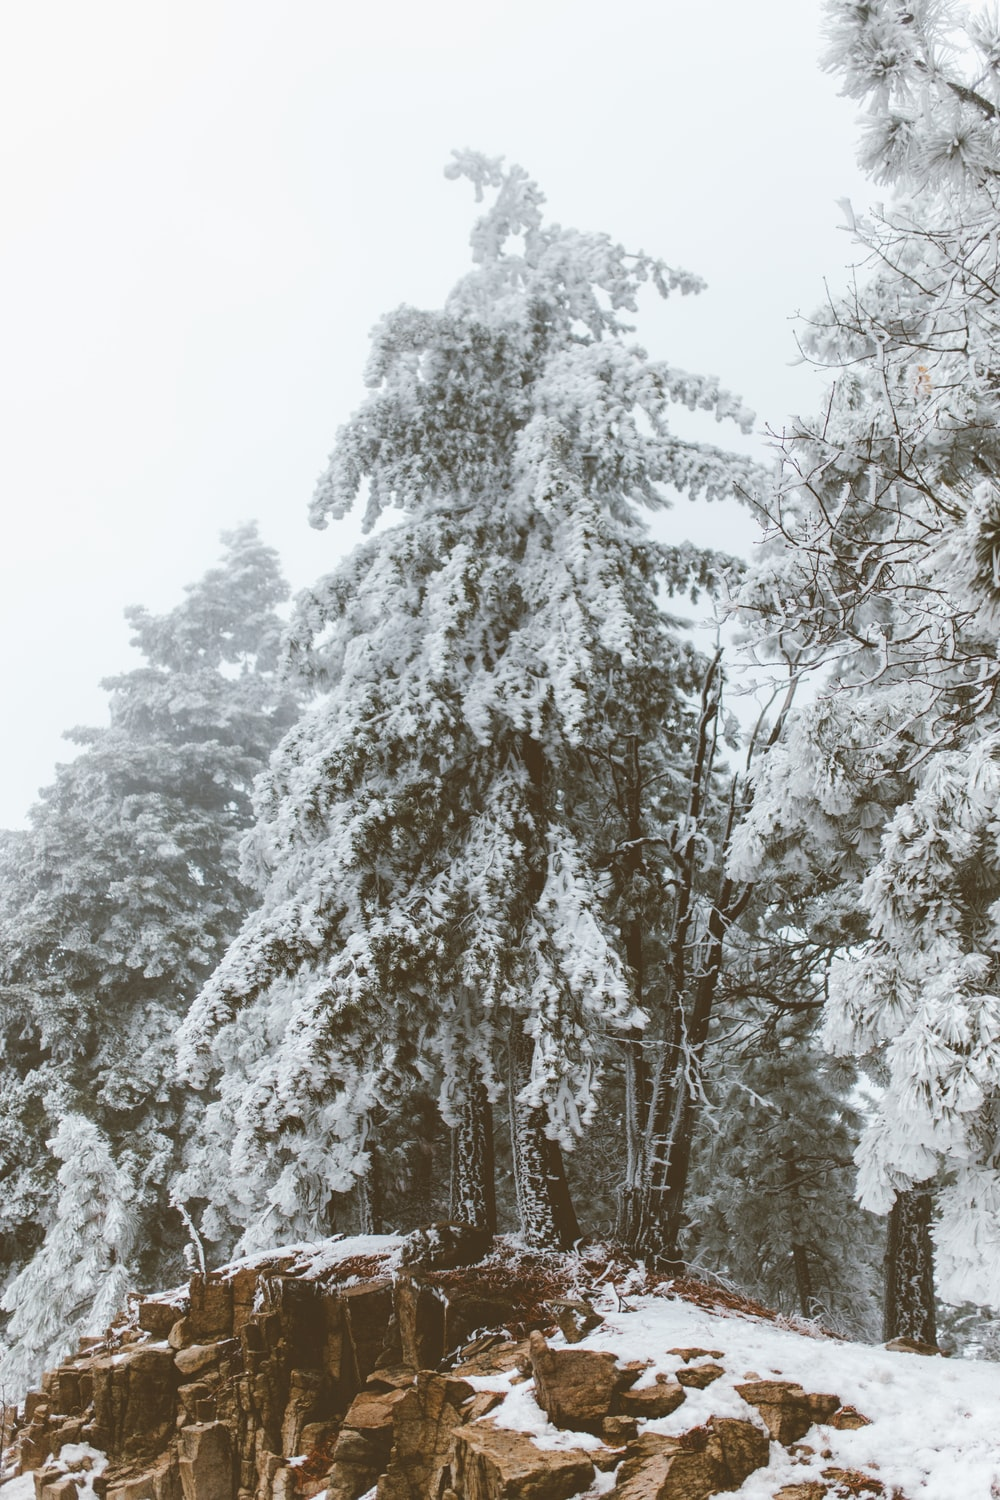 snow covered pine trees at daytime